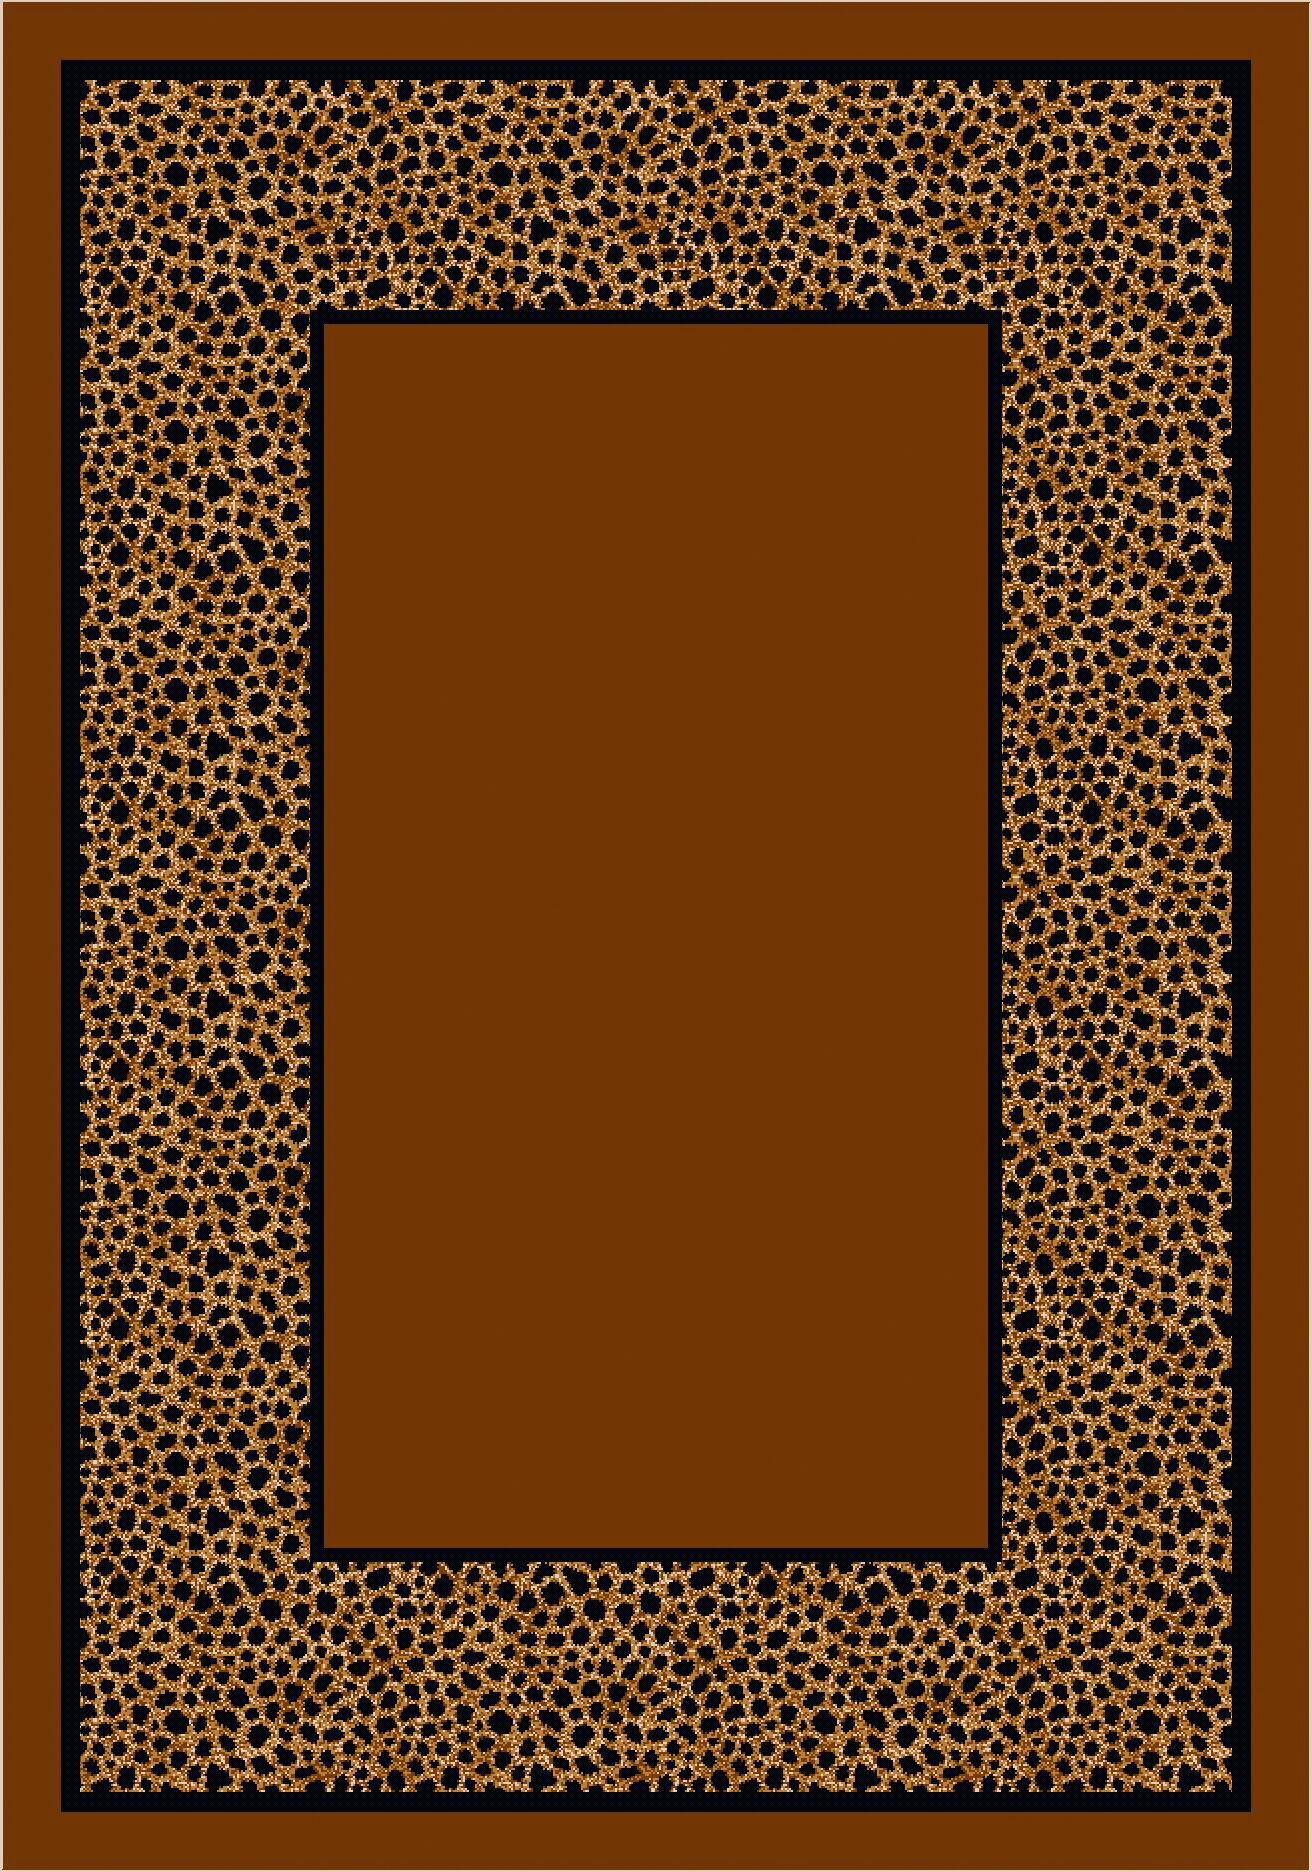 Design Center Brown Simaruba Cheetah Area Rug Rug Size: Round 7'7